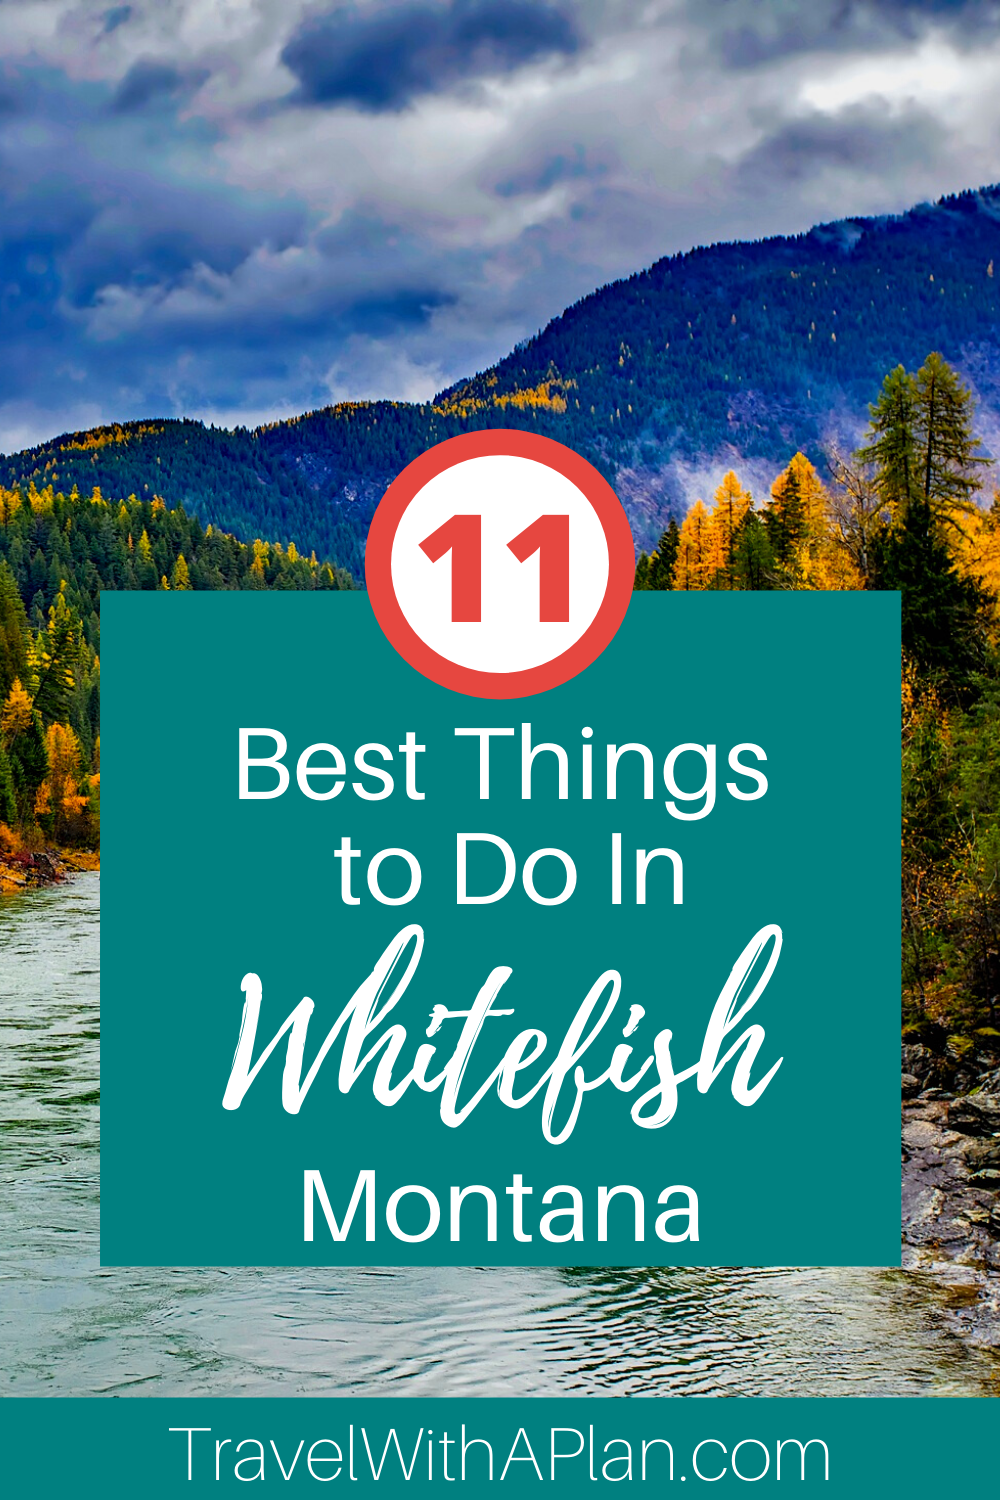 Find out the best things to do in Whitefish, Montana from Top US Family Travel Blog, Travel With A Plan!